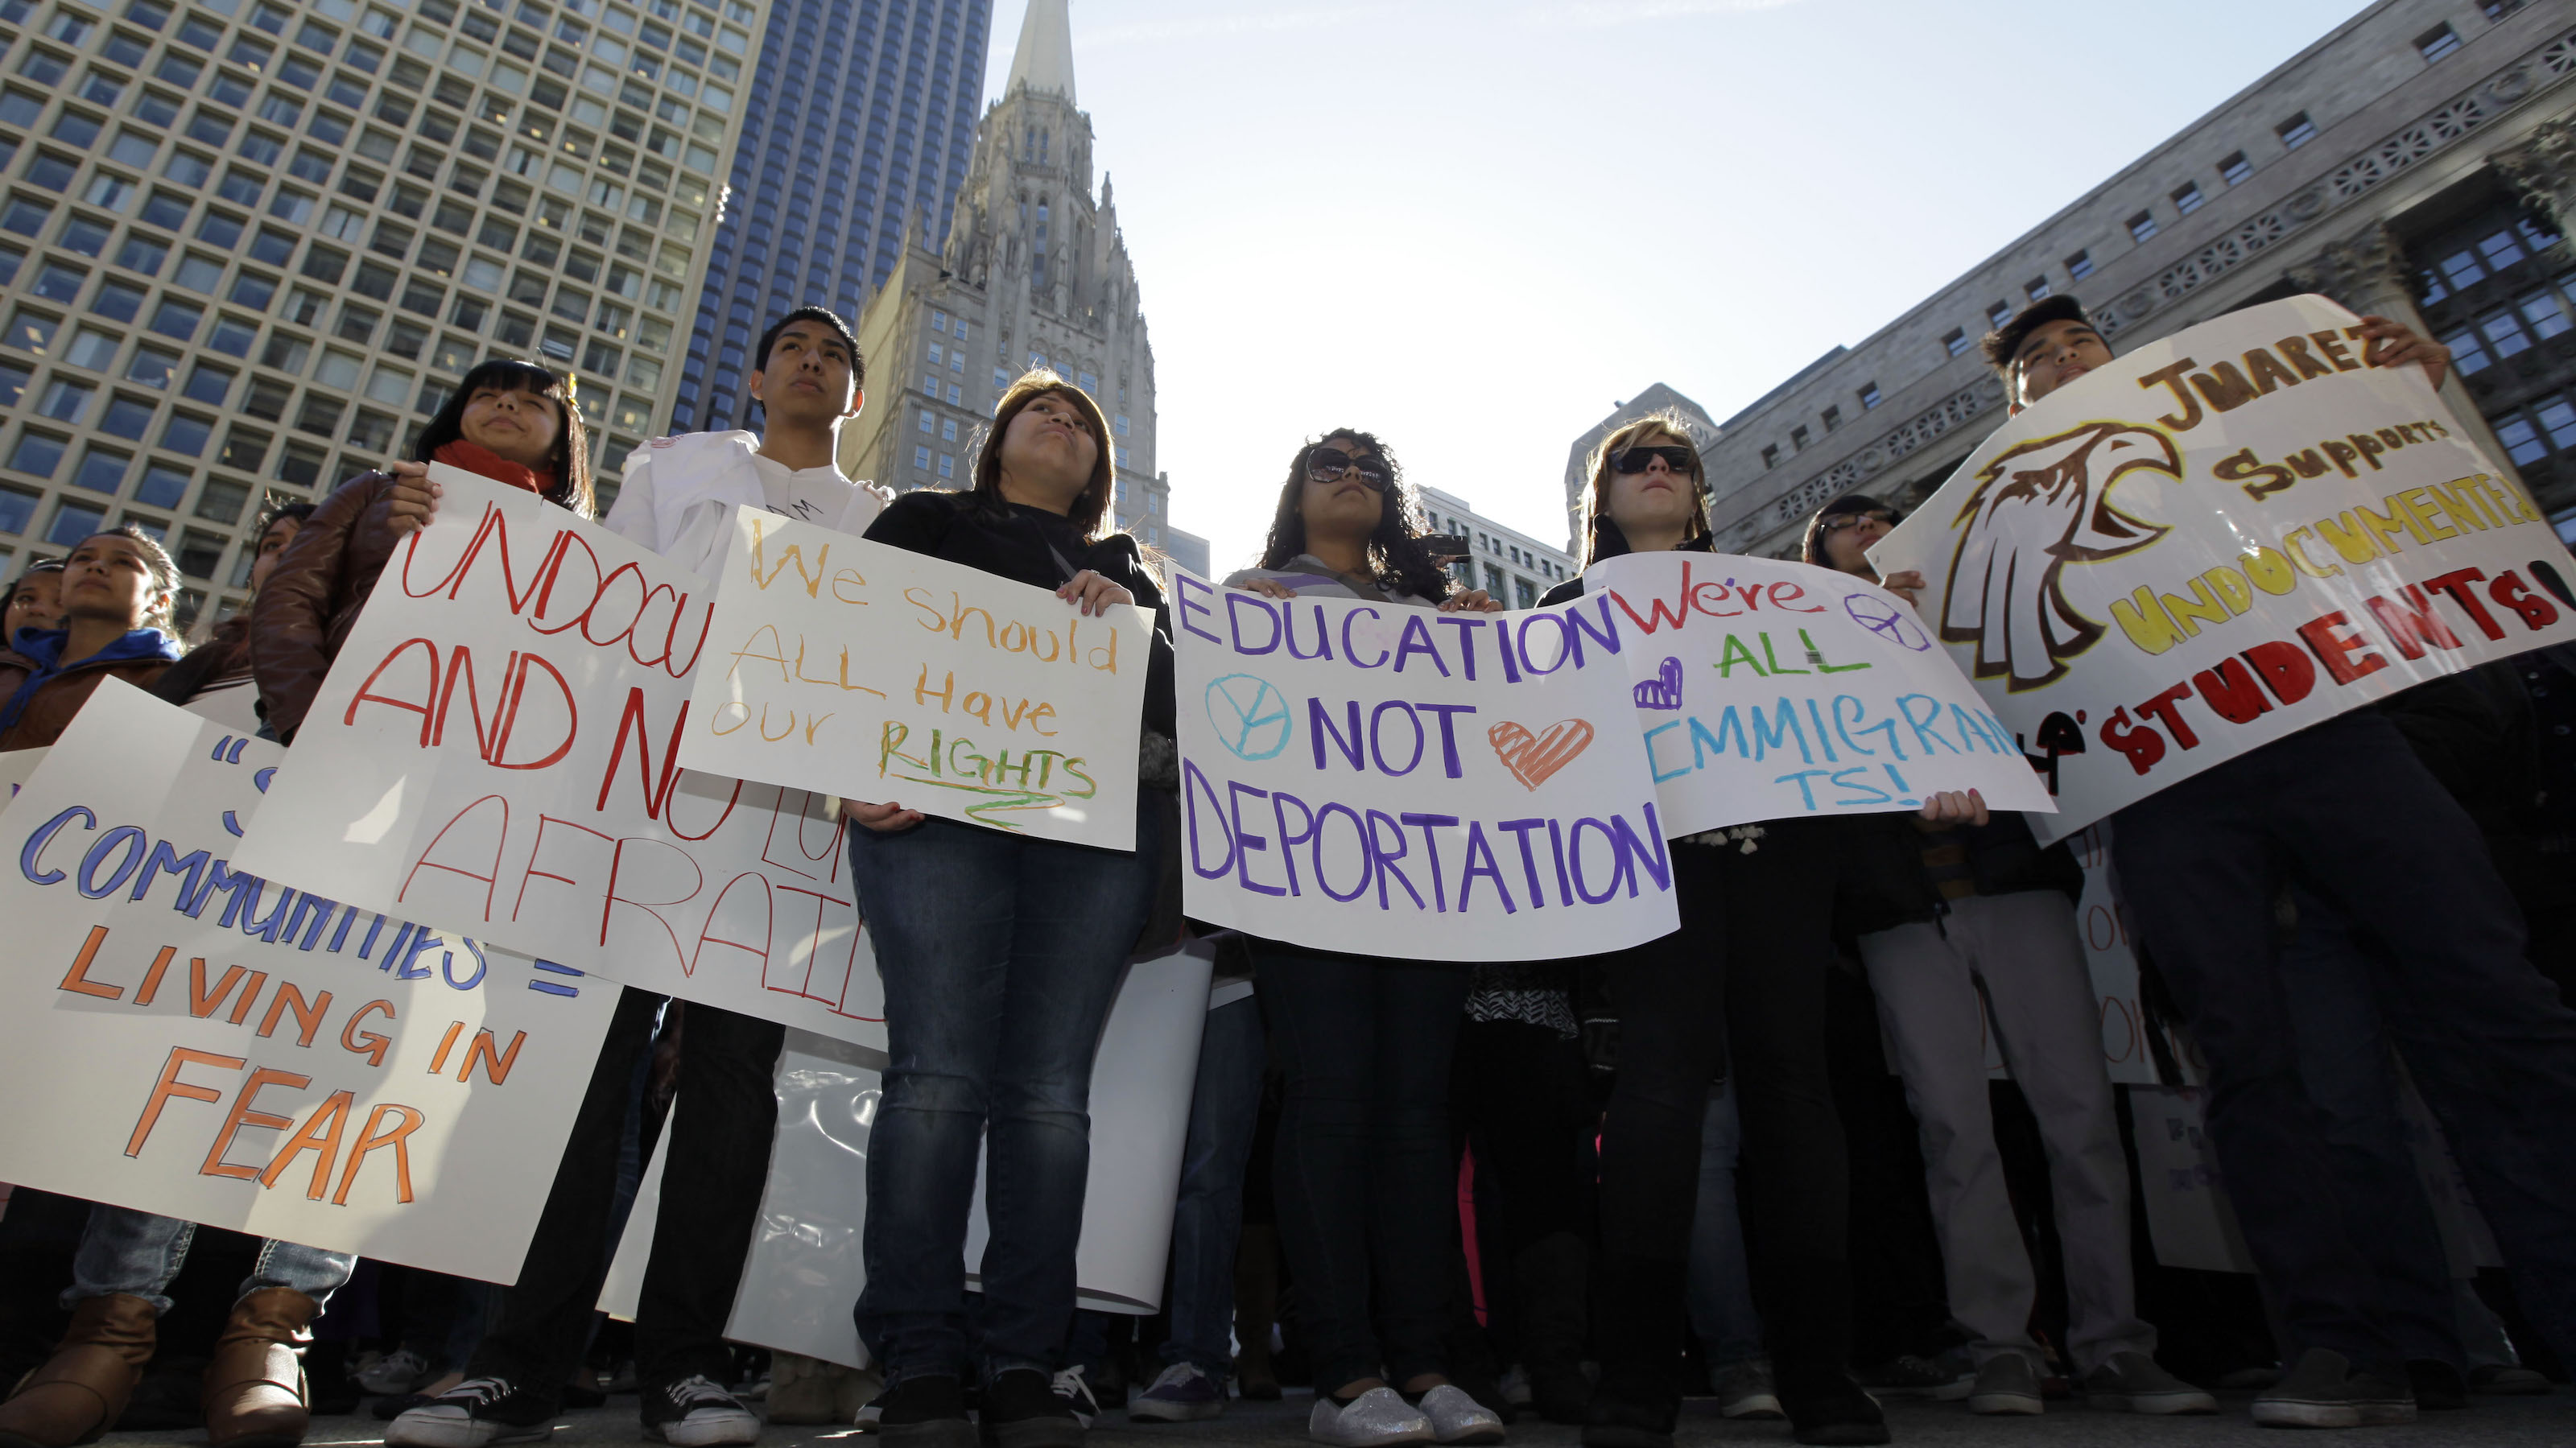 In this Saturday, March 10, 2012 photo, demonstrators hold signs during a rally for undocumented students at Daley Plaza in Chicago. The movement, which started a few years ago during the push for the Dream Act, now has thousands of members, and well organized networks in New York, Chicago and Los Angeles. (AP Photo/Nam Y. Huh)